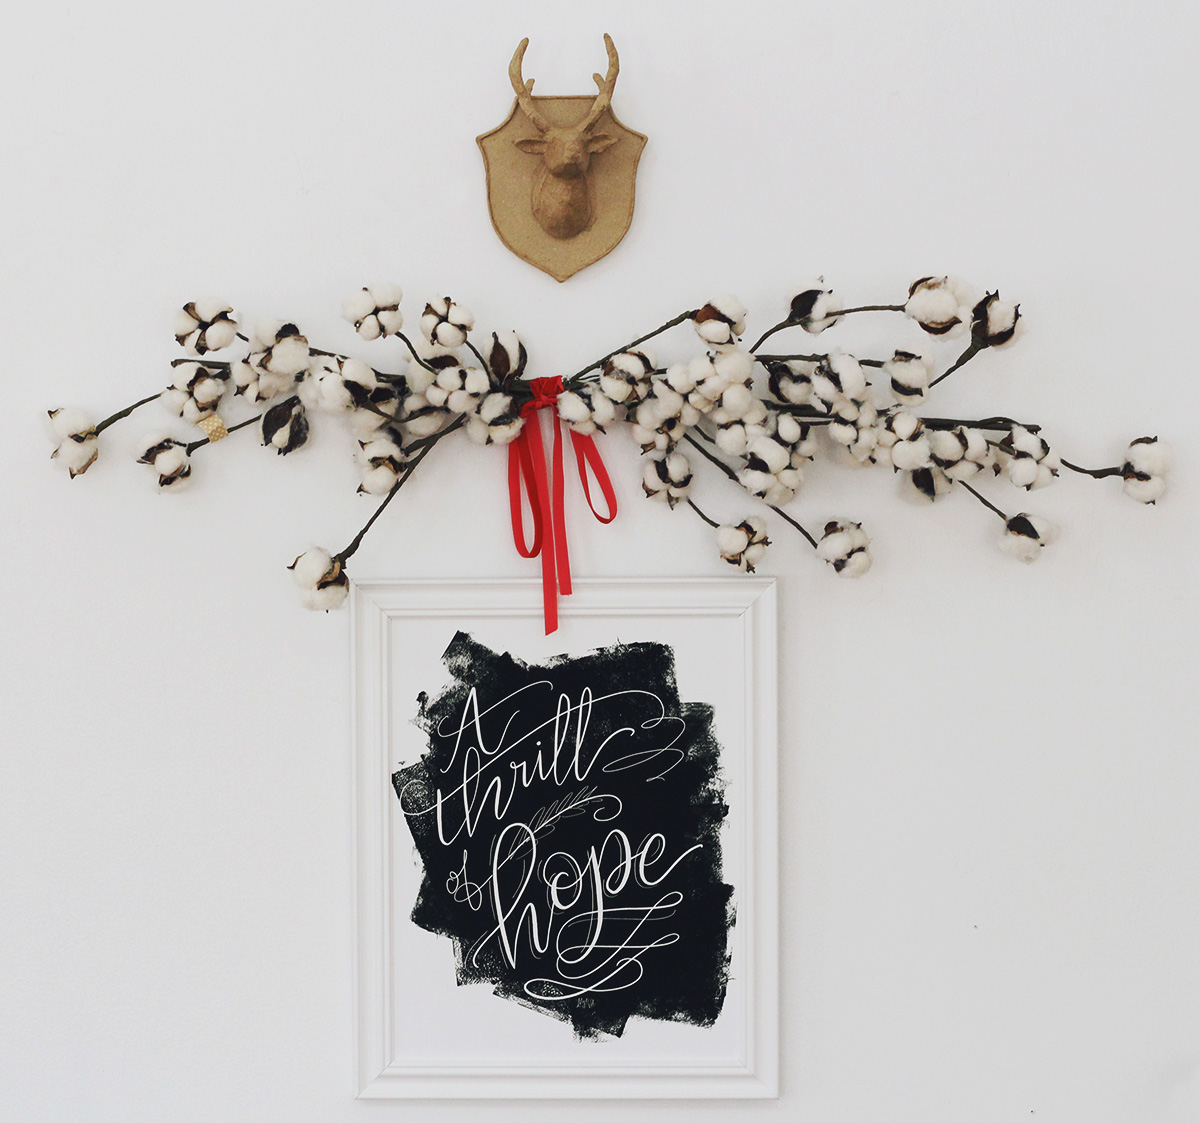 A thrill of hope Christmas print | Oh Holy Night Art | Hand lettered christmas art | Religious Christmas Art | Black and white holiday decor